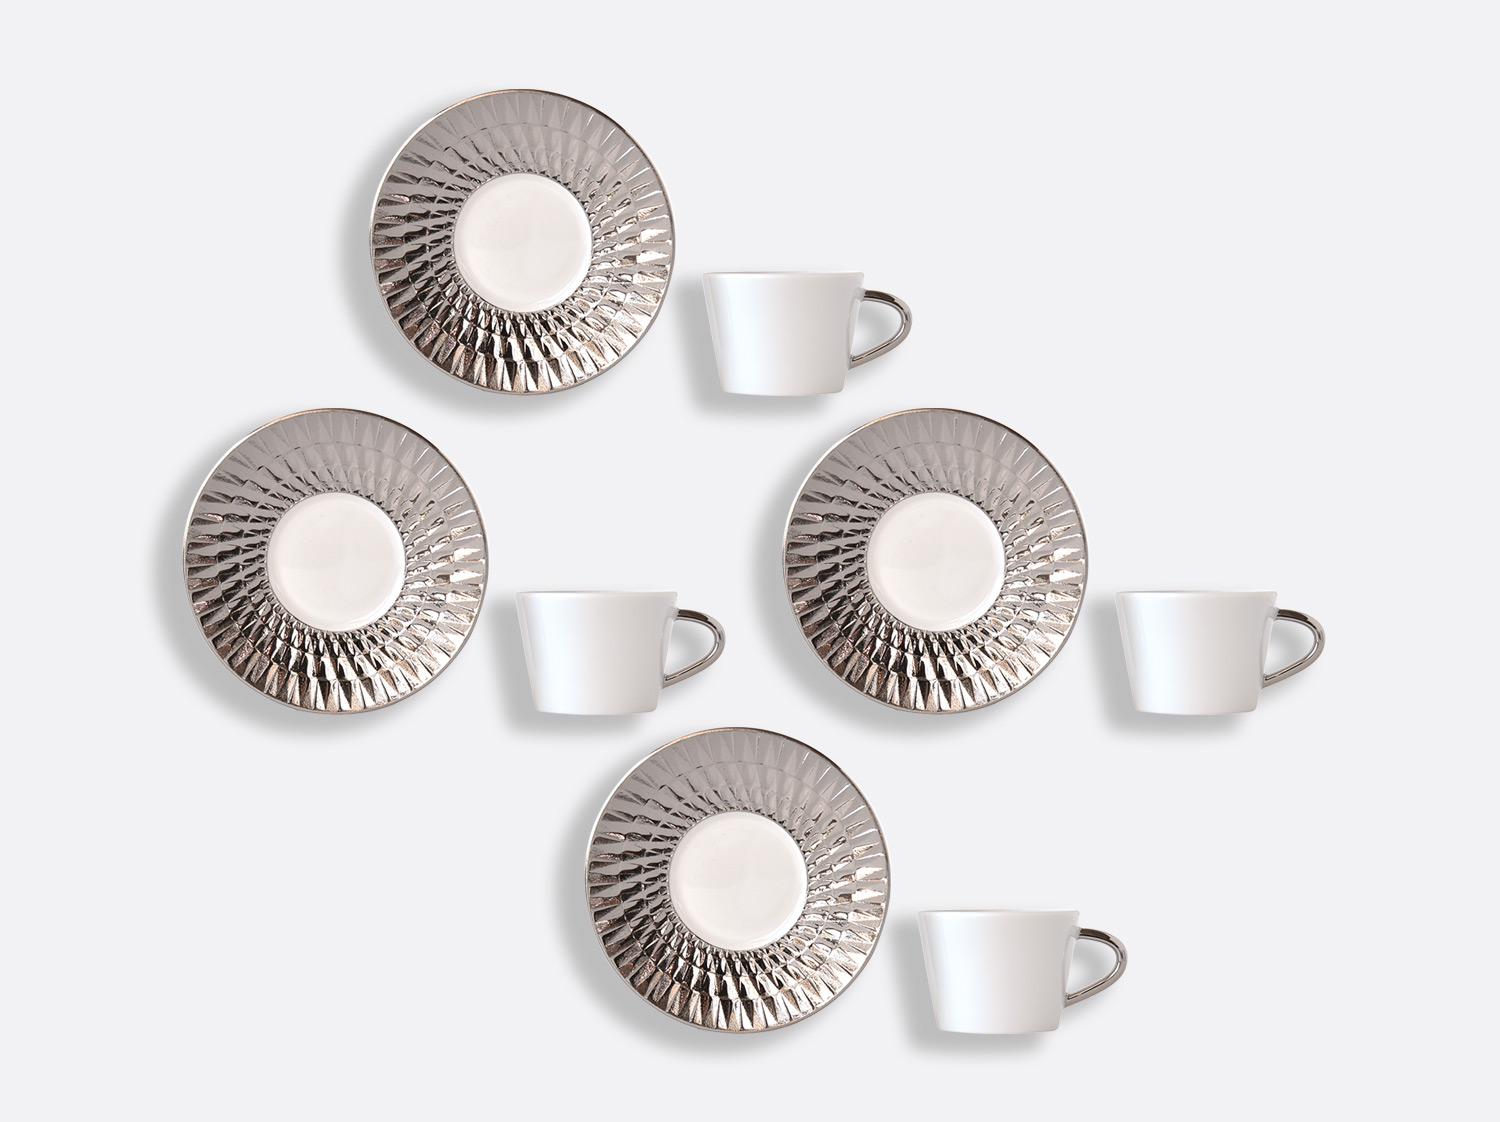 Coffret de tasses & soucoupes café 8 cl - Coffret de 4 en porcelaine de la collection Twist platine Bernardaud